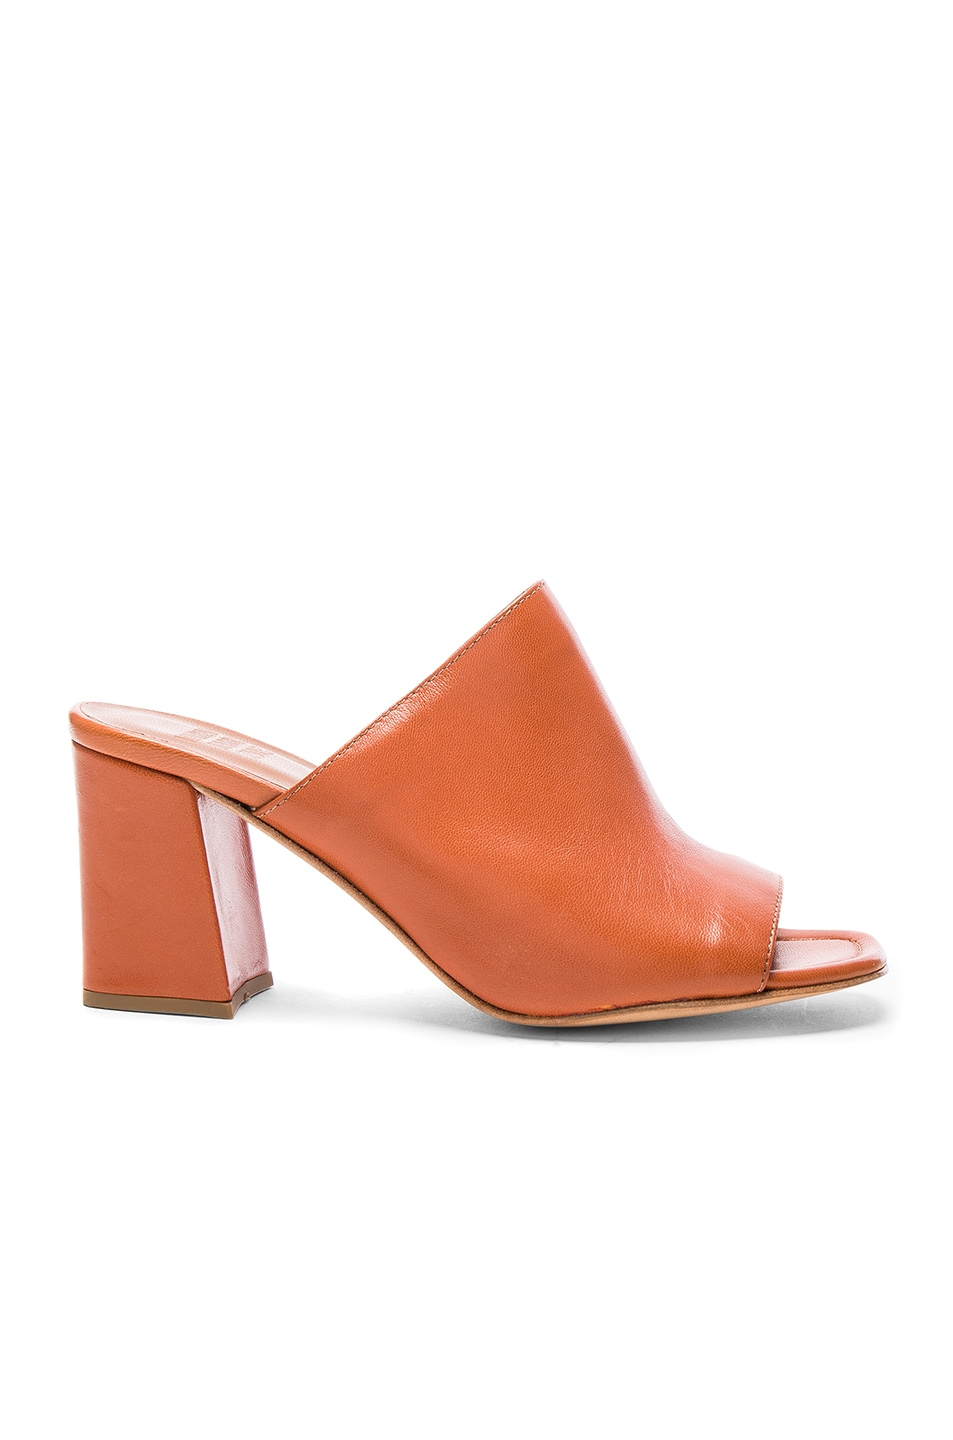 Image 1 of Maryam Nassir Zadeh Leather Penelope Mules in Whiskey